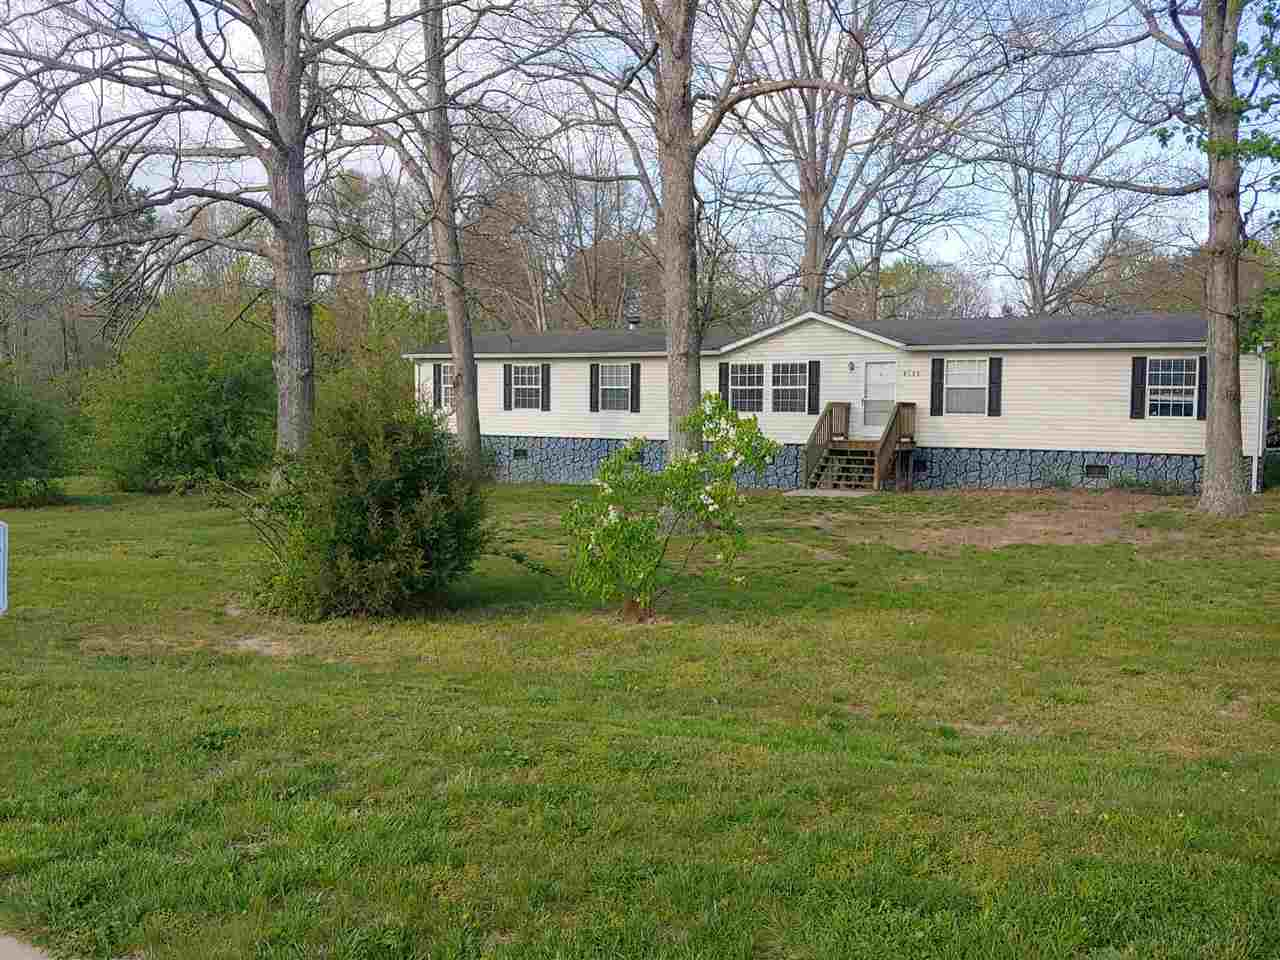 1951 EAST SIDE HWY, CRIMORA, VA 24431